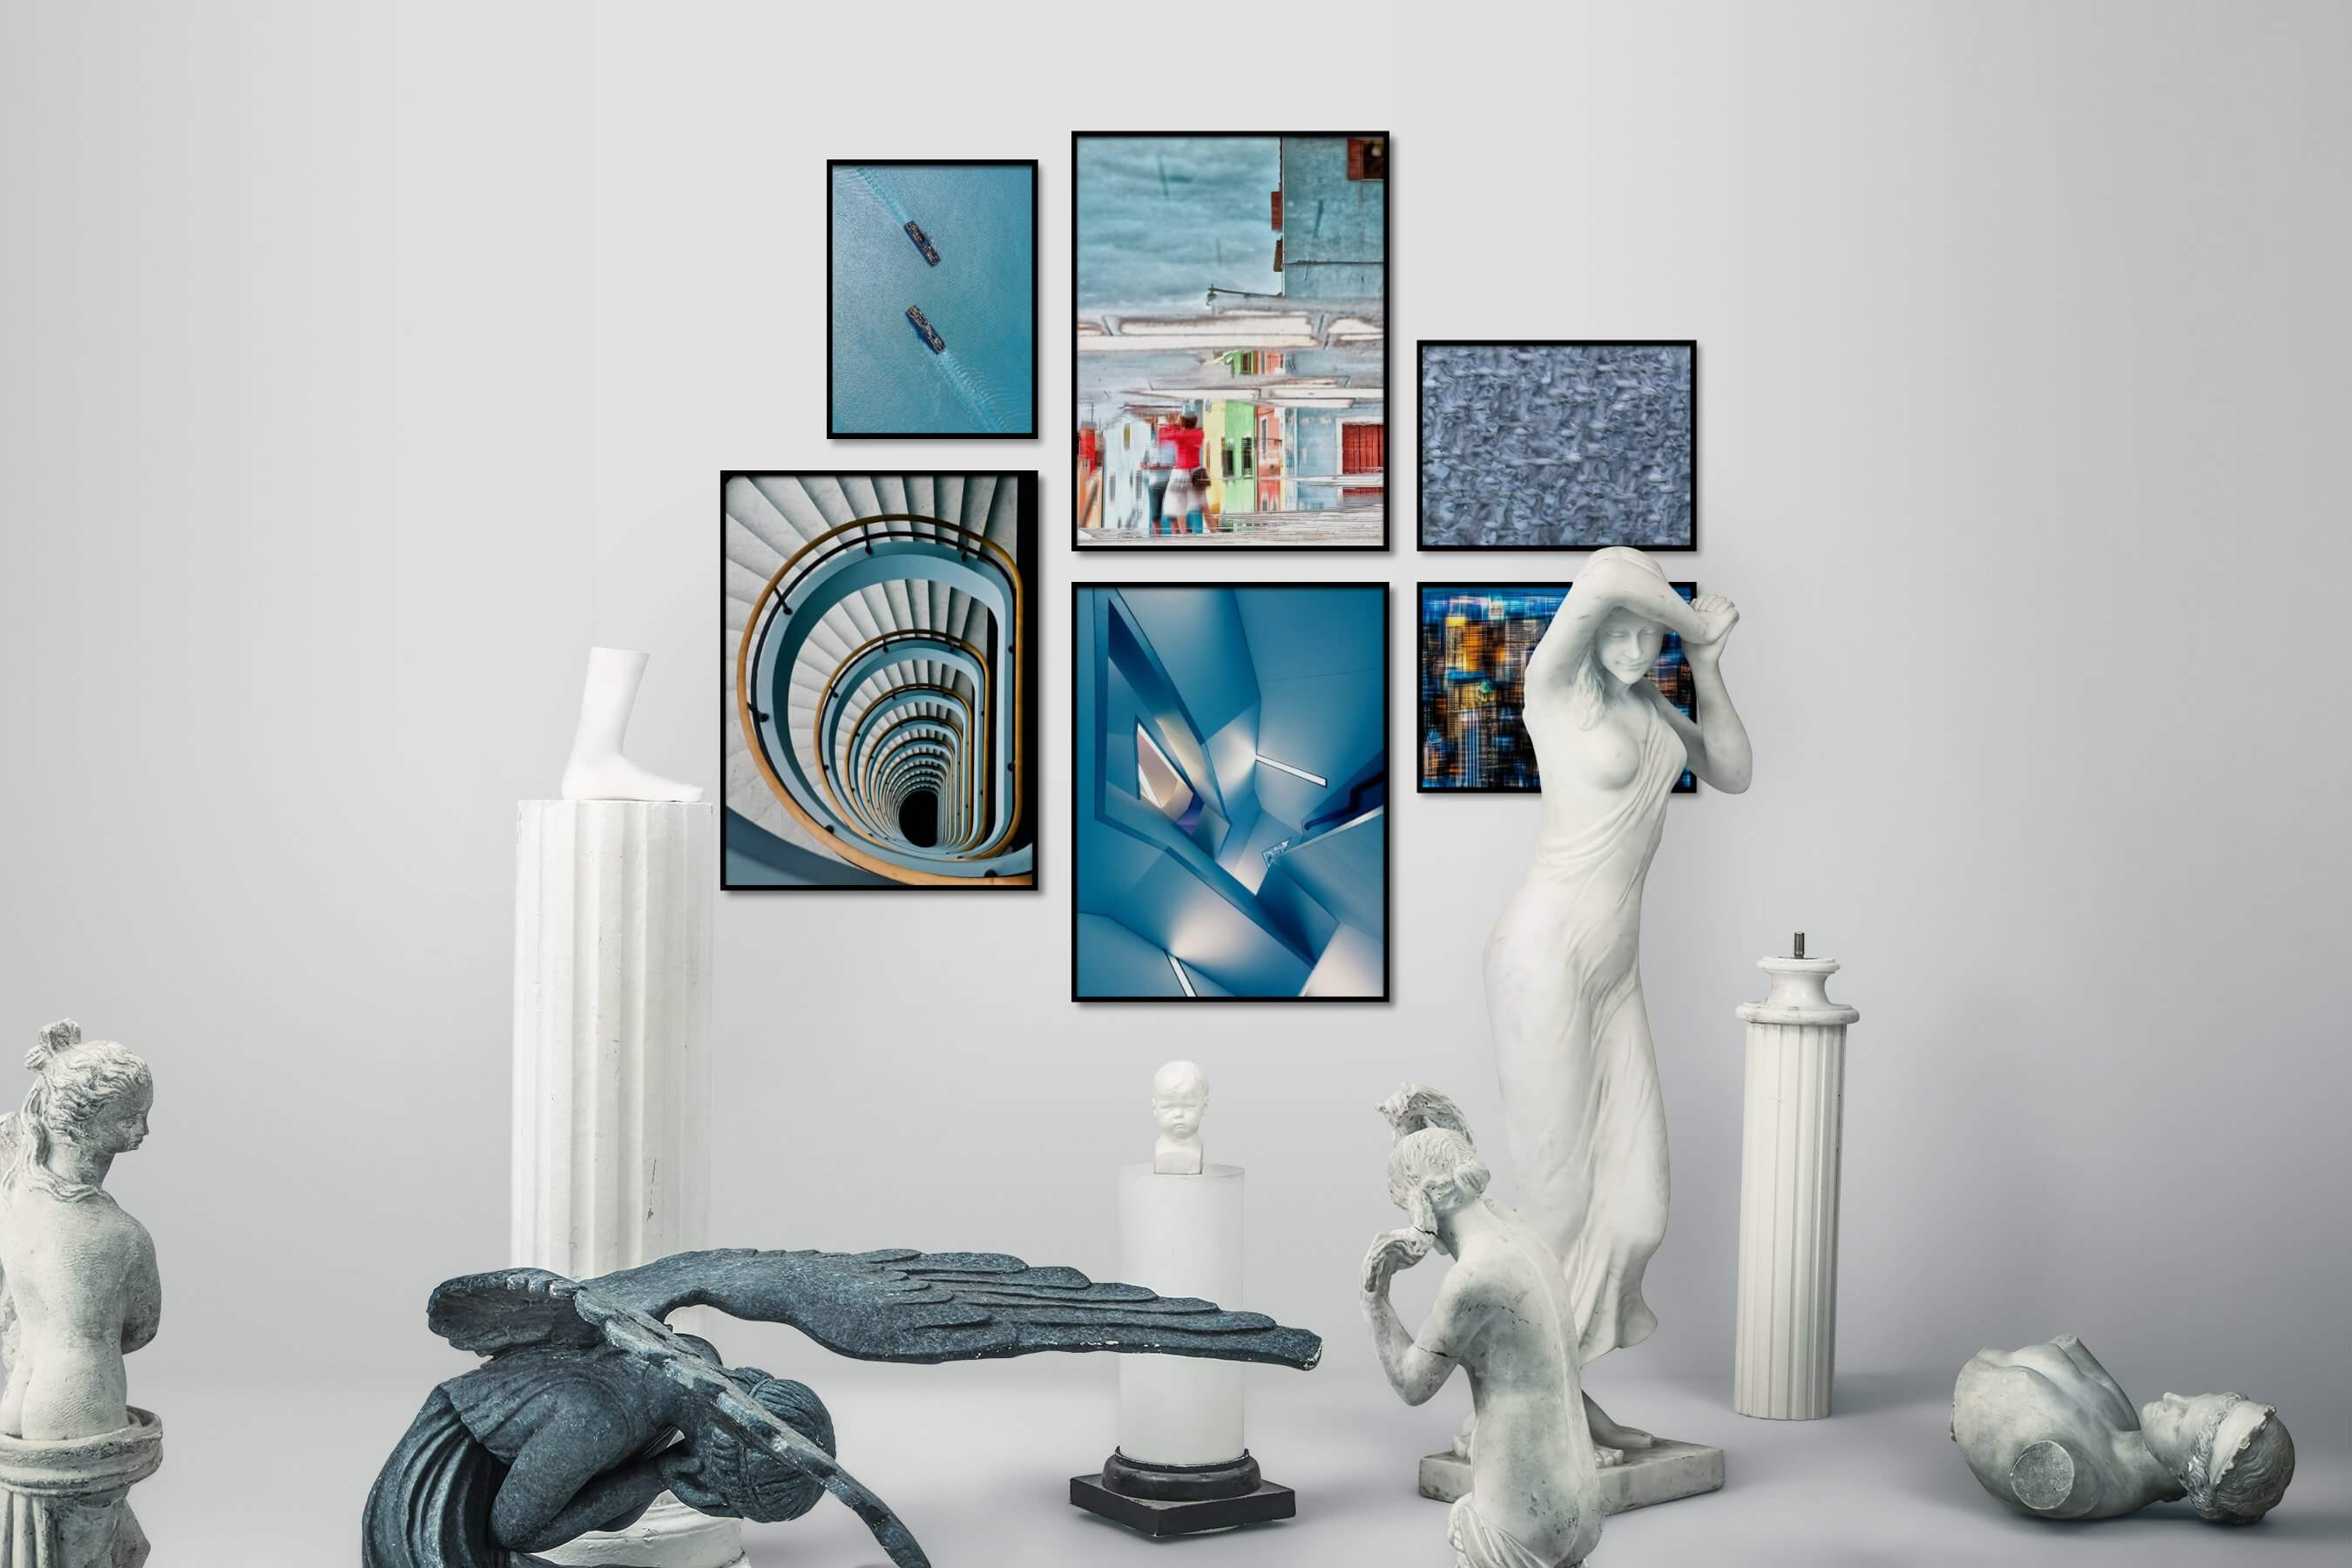 Gallery wall idea with six framed pictures arranged on a wall depicting For the Minimalist, Beach & Water, For the Moderate, City Life, For the Maximalist, Animals, and Americana